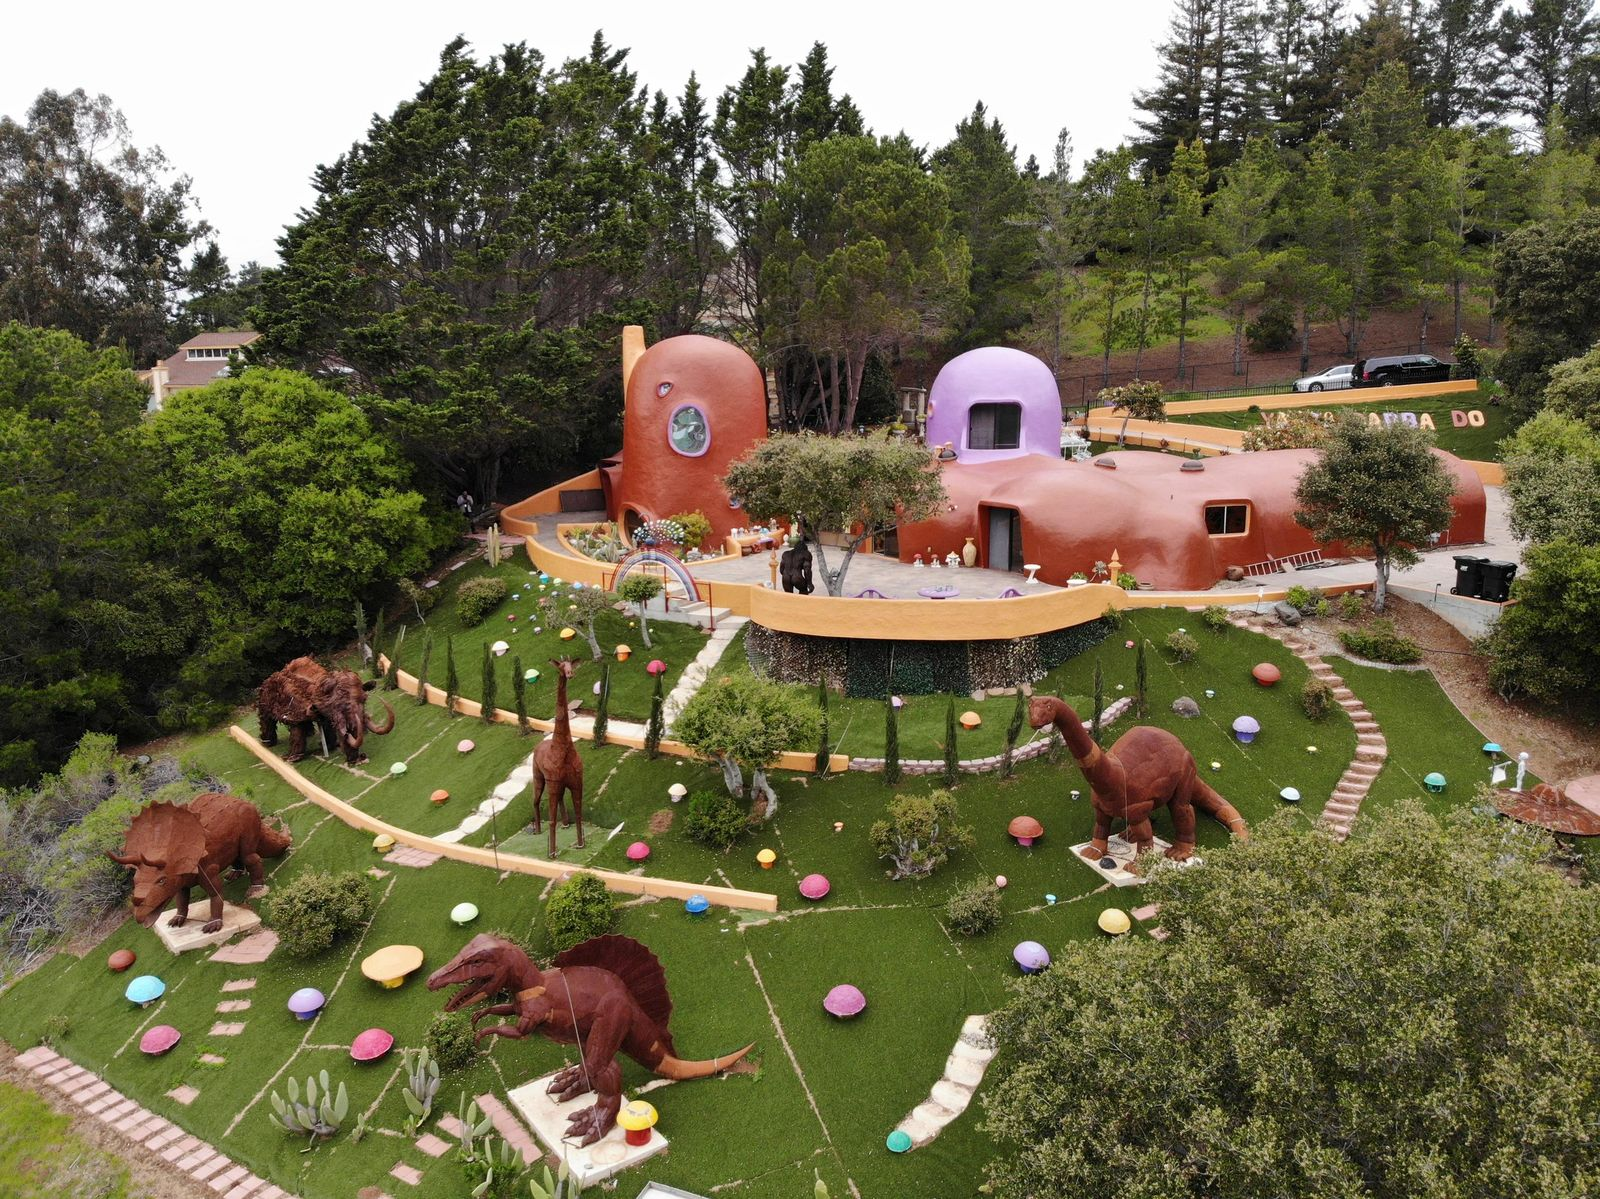 This Monday, April 1, 2019 photo, shows an aerial view of the Flintstone House in Hillsborough, Calif. The San Francisco Bay Area suburb of Hillsborough is suing the owner of the house, saying that she installed dangerous steps, dinosaurs and other Flintstone-era figurines without necessary permits. The owner and her attorney say they will fight for the rights of property owners and Fred and Barney fans everywhere. (AP Photo/Terry Chea)